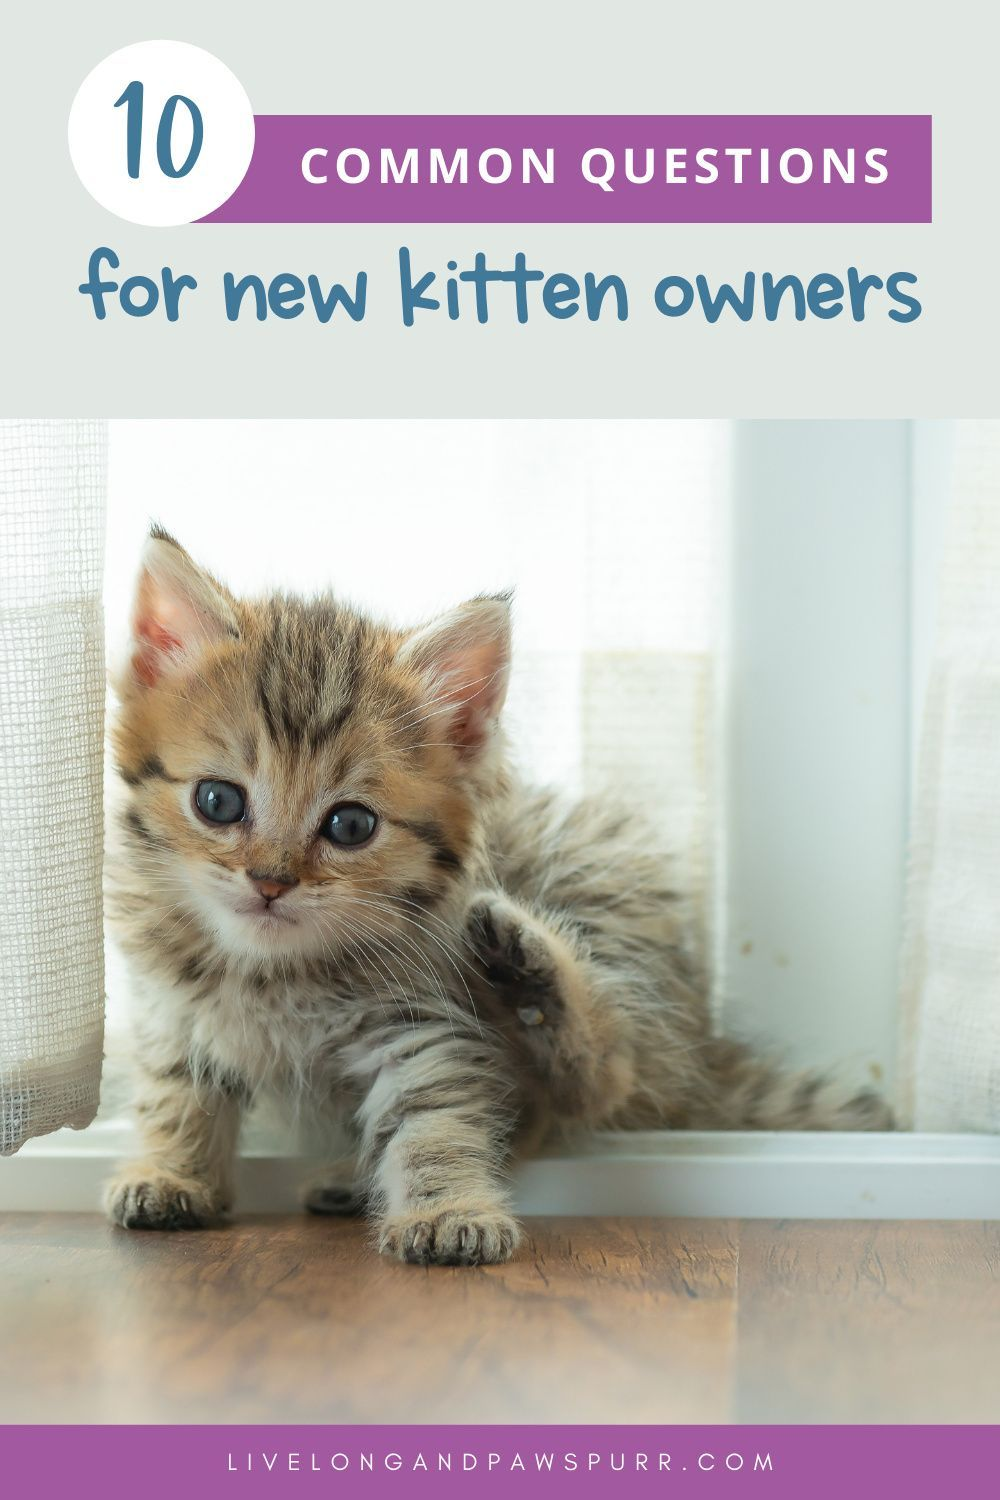 10 Common Questions For New Kitten Owners Live Long And Pawspurr In 2020 Cat Advice Kitten Cat Care